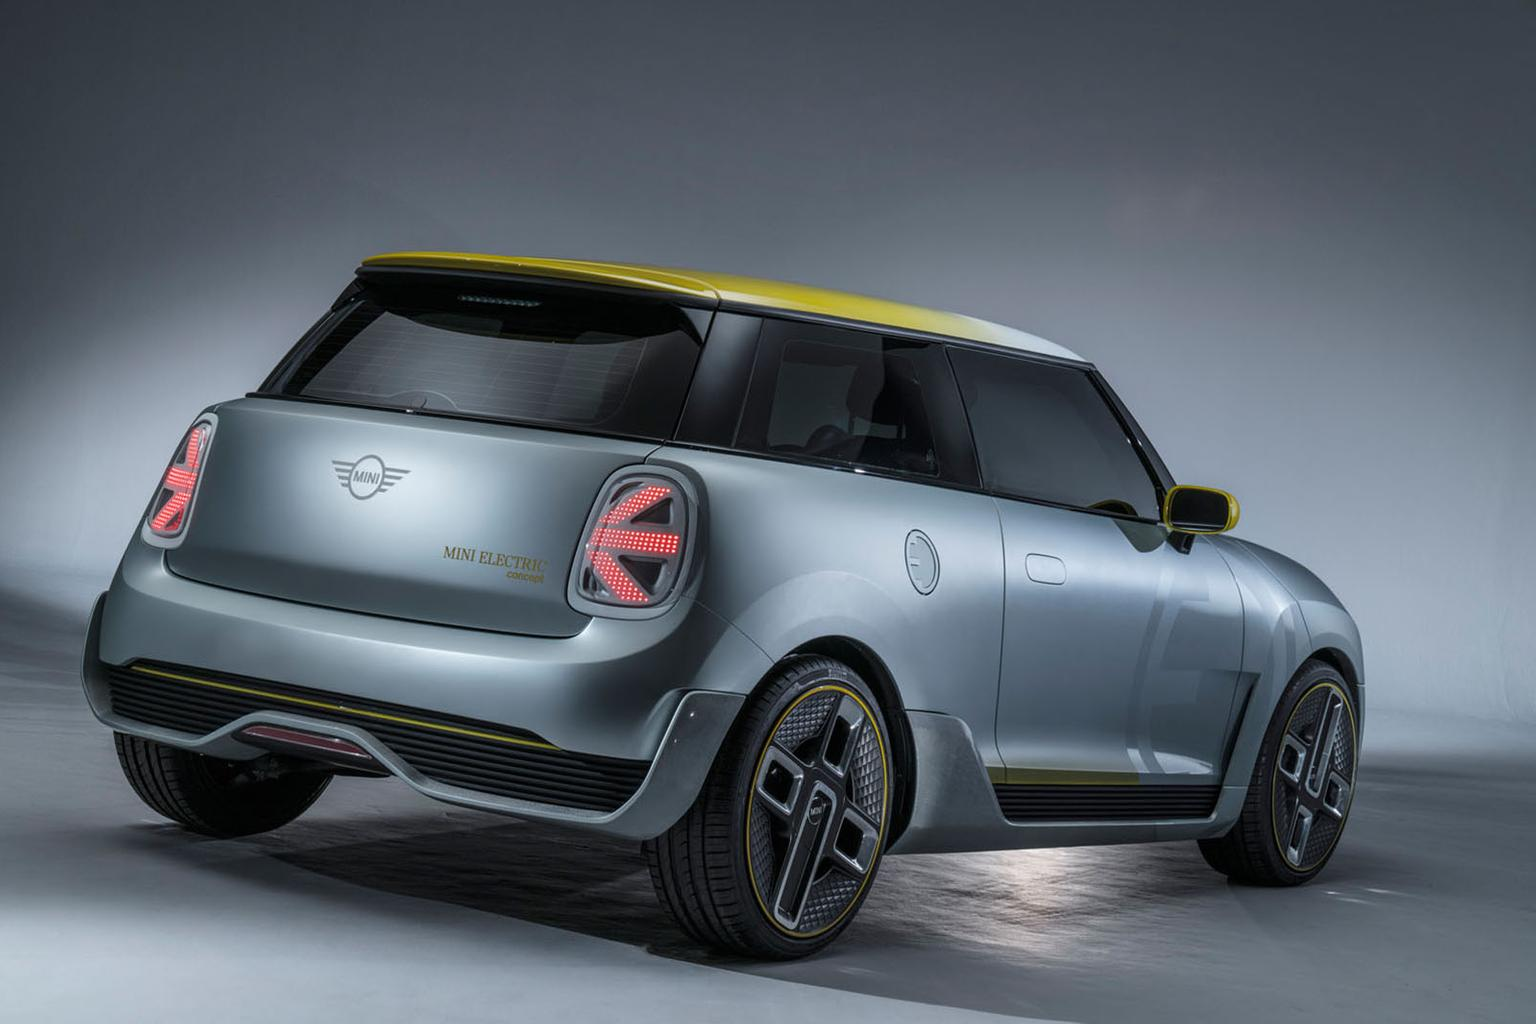 2019 Mini Electric – pricing, specs and release date